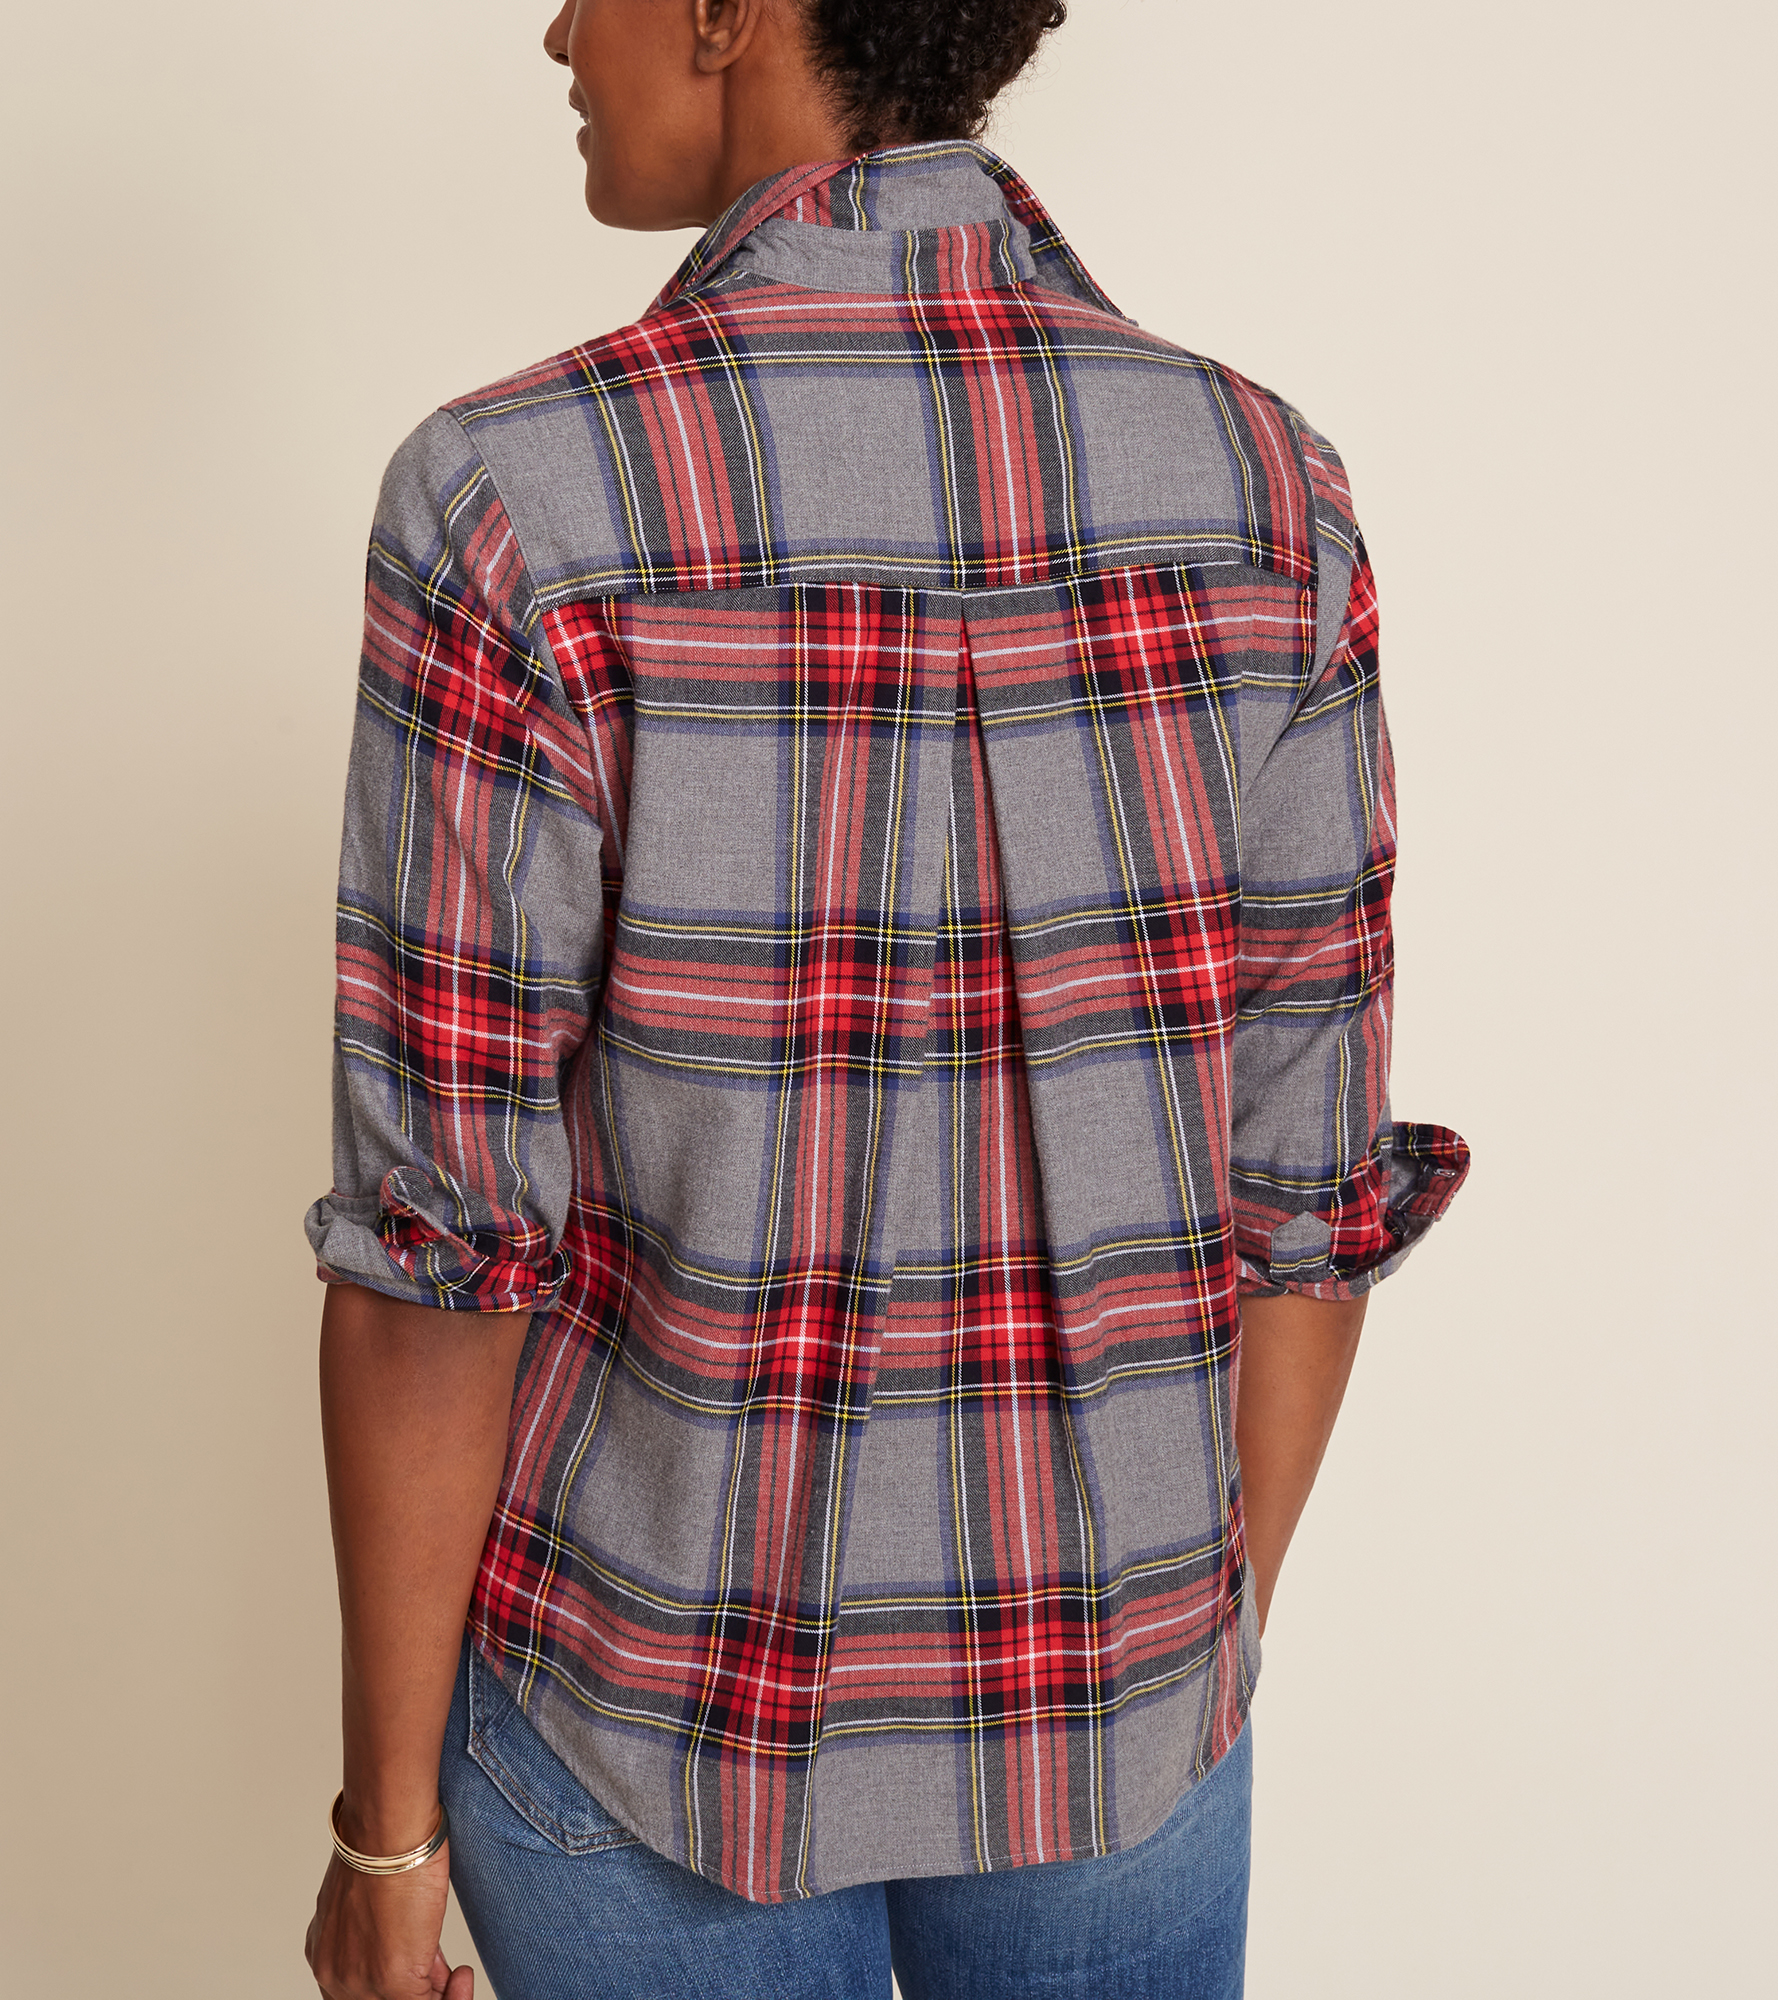 Image of The Hero Gray Melange with Red Plaid, Feathered Flannel Sale